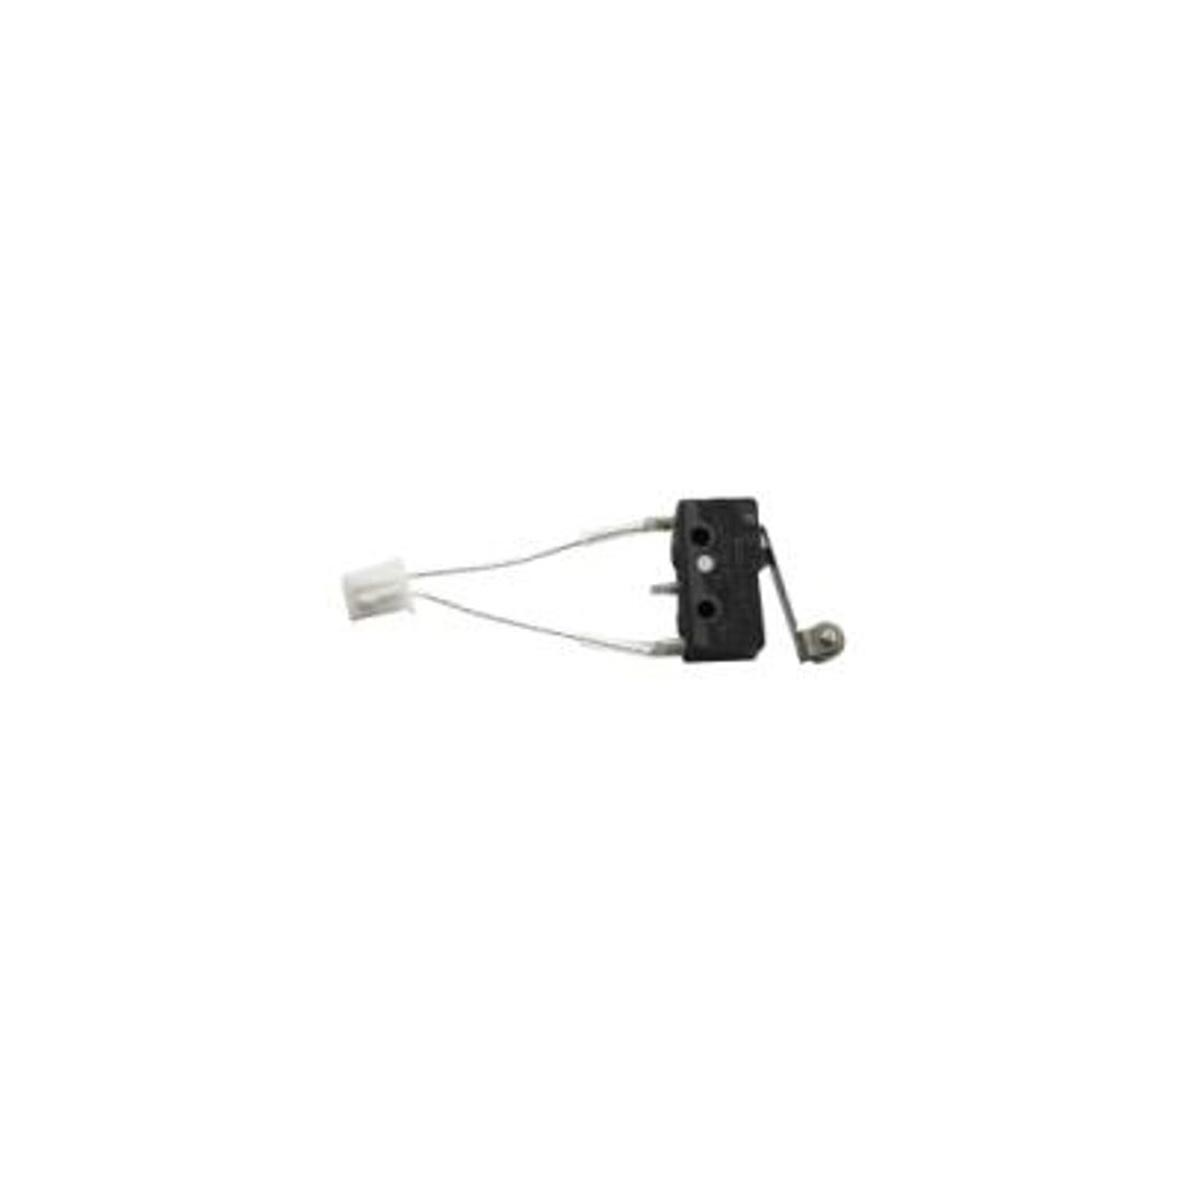 Y Limit Switch 30 mm - 2 pin